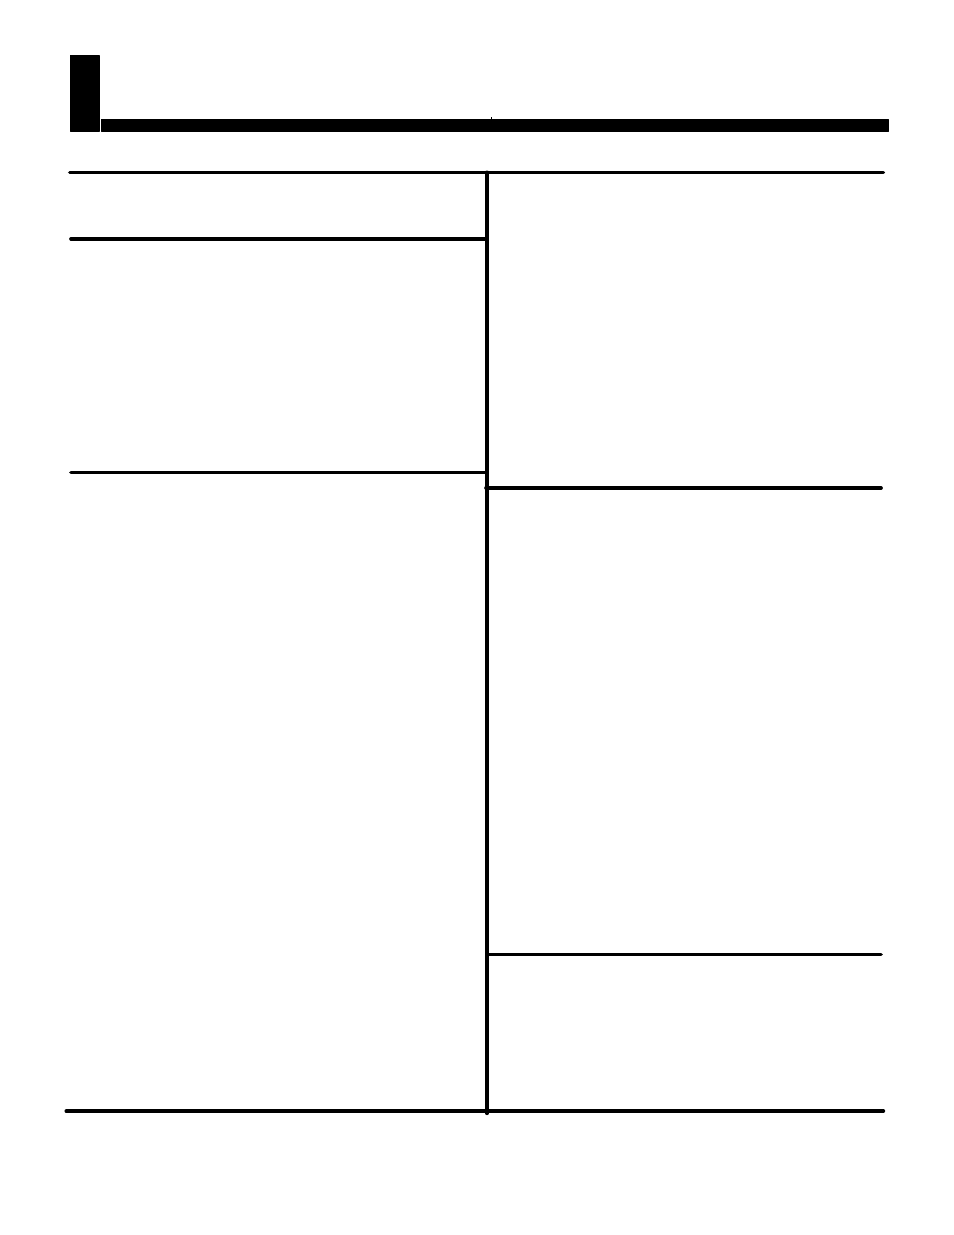 Modular Paralleling System Mpsg 350 Application Engineering Data Switch Ic Description Generac Mpsg350 User Manual Page 2 4